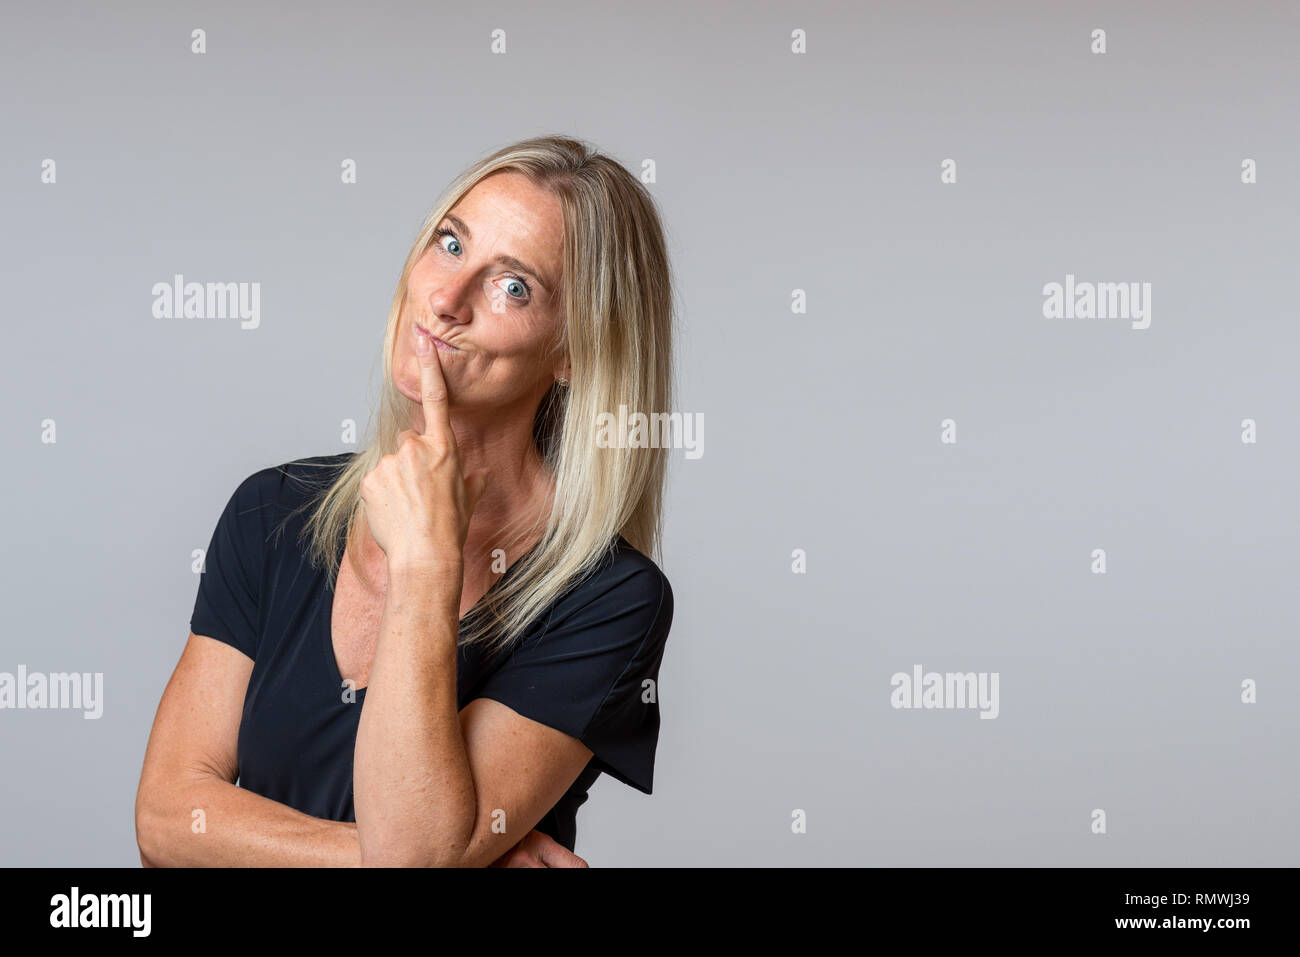 Speculative woman looking at the camera with wide eyed thoughtful expression with her head tilted to the side and hand to her chin over grey with copy - Stock Image